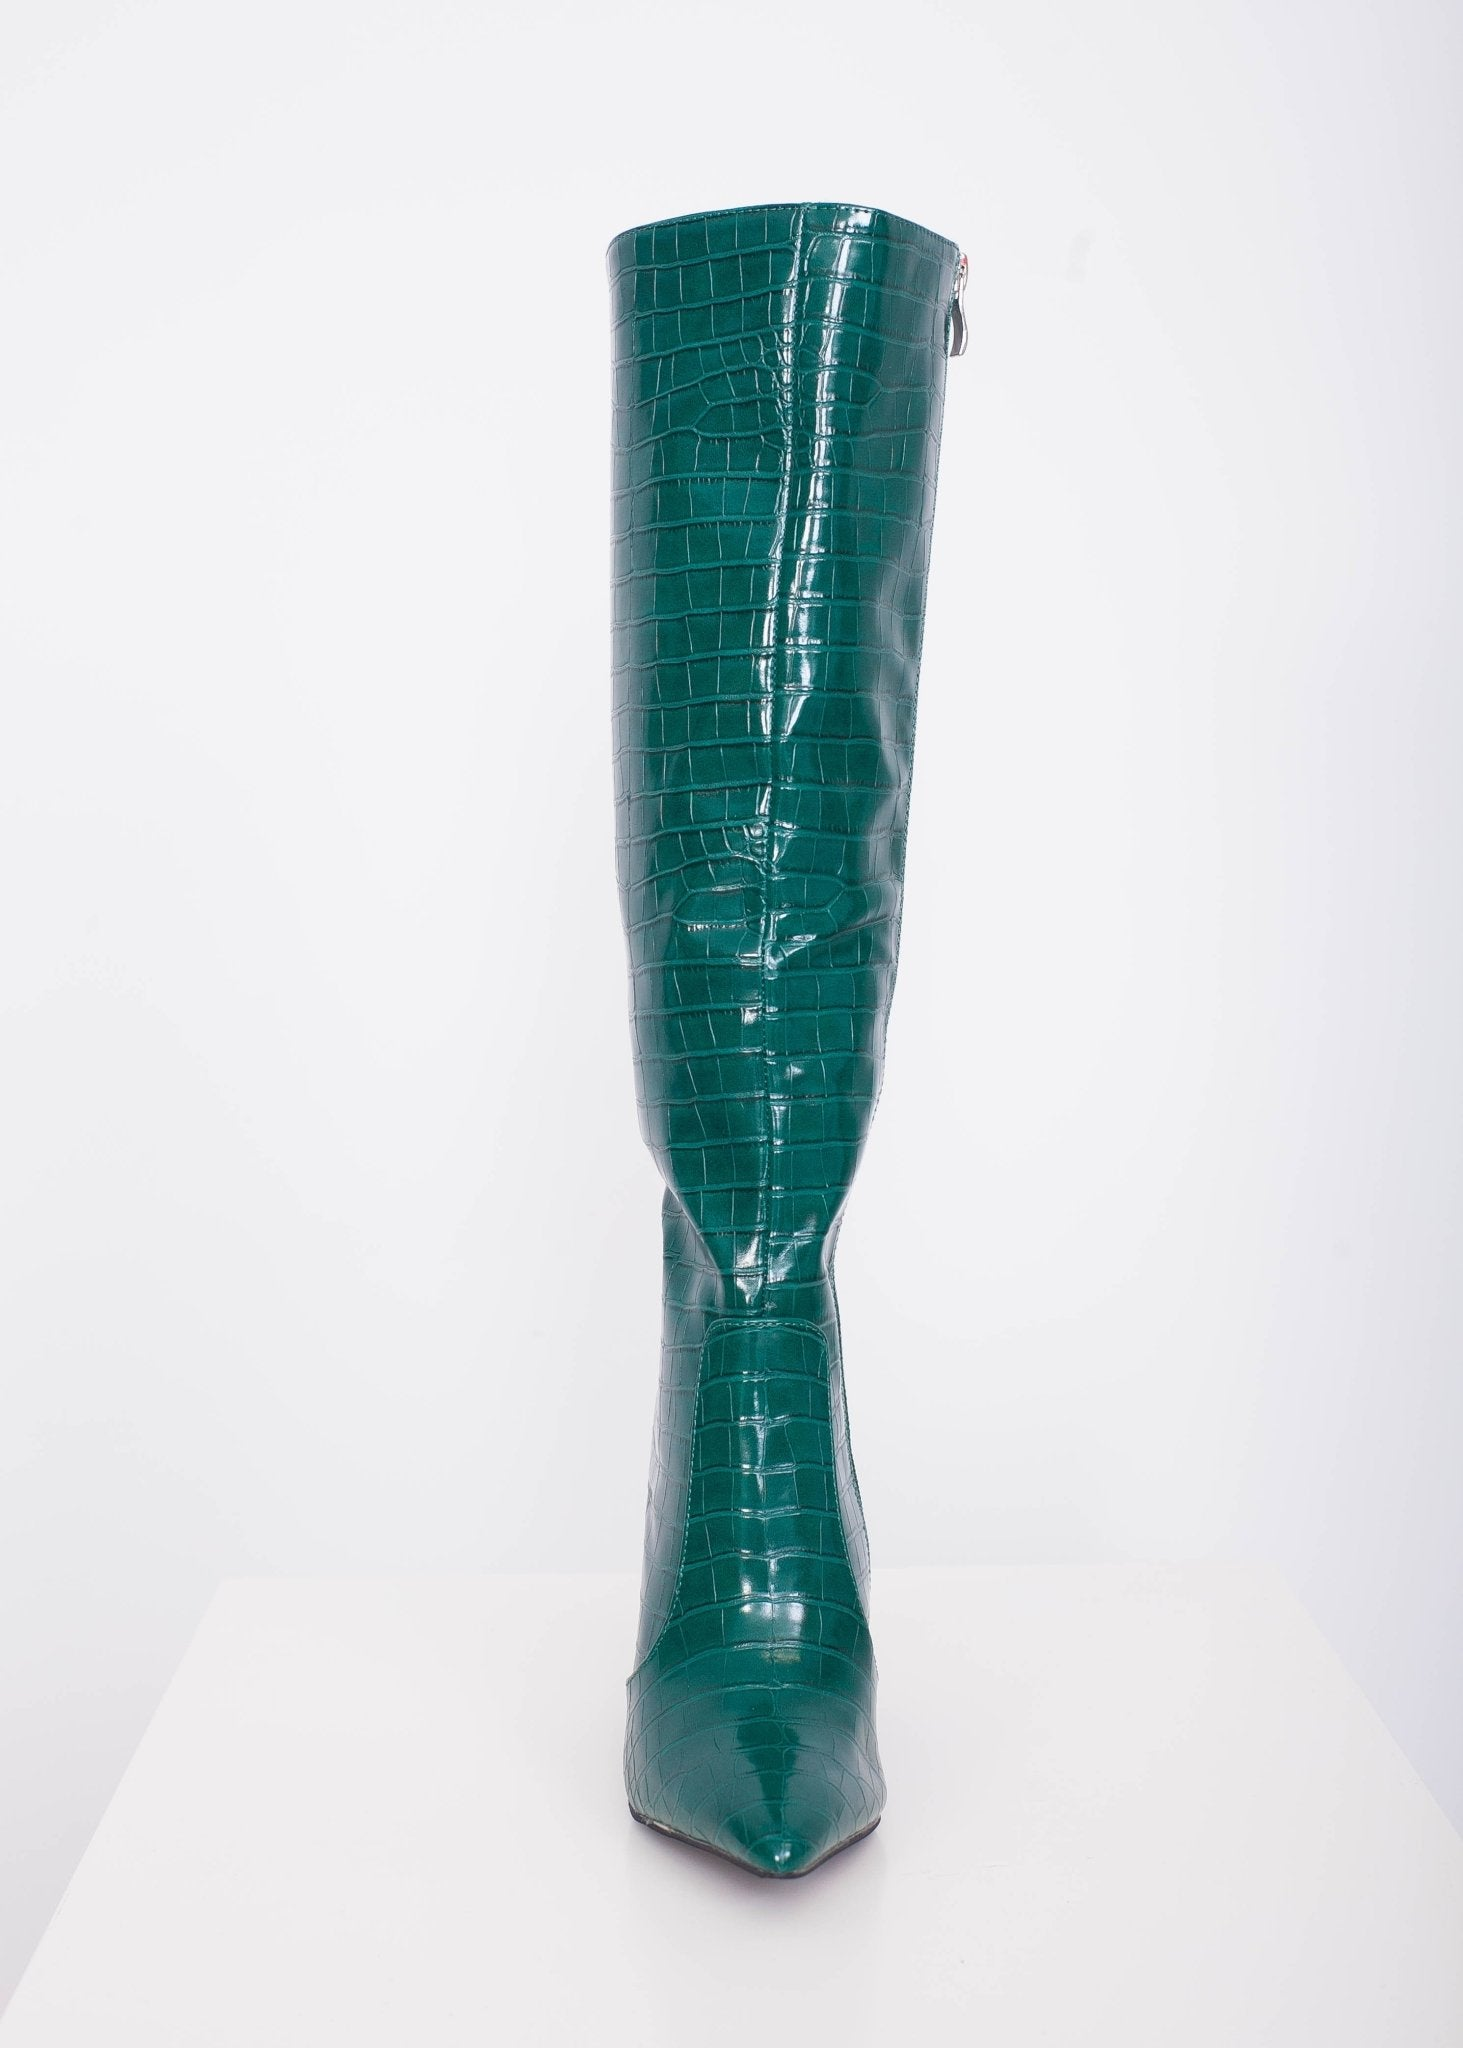 Priya Green Croc Knee High Boot - The Walk in Wardrobe